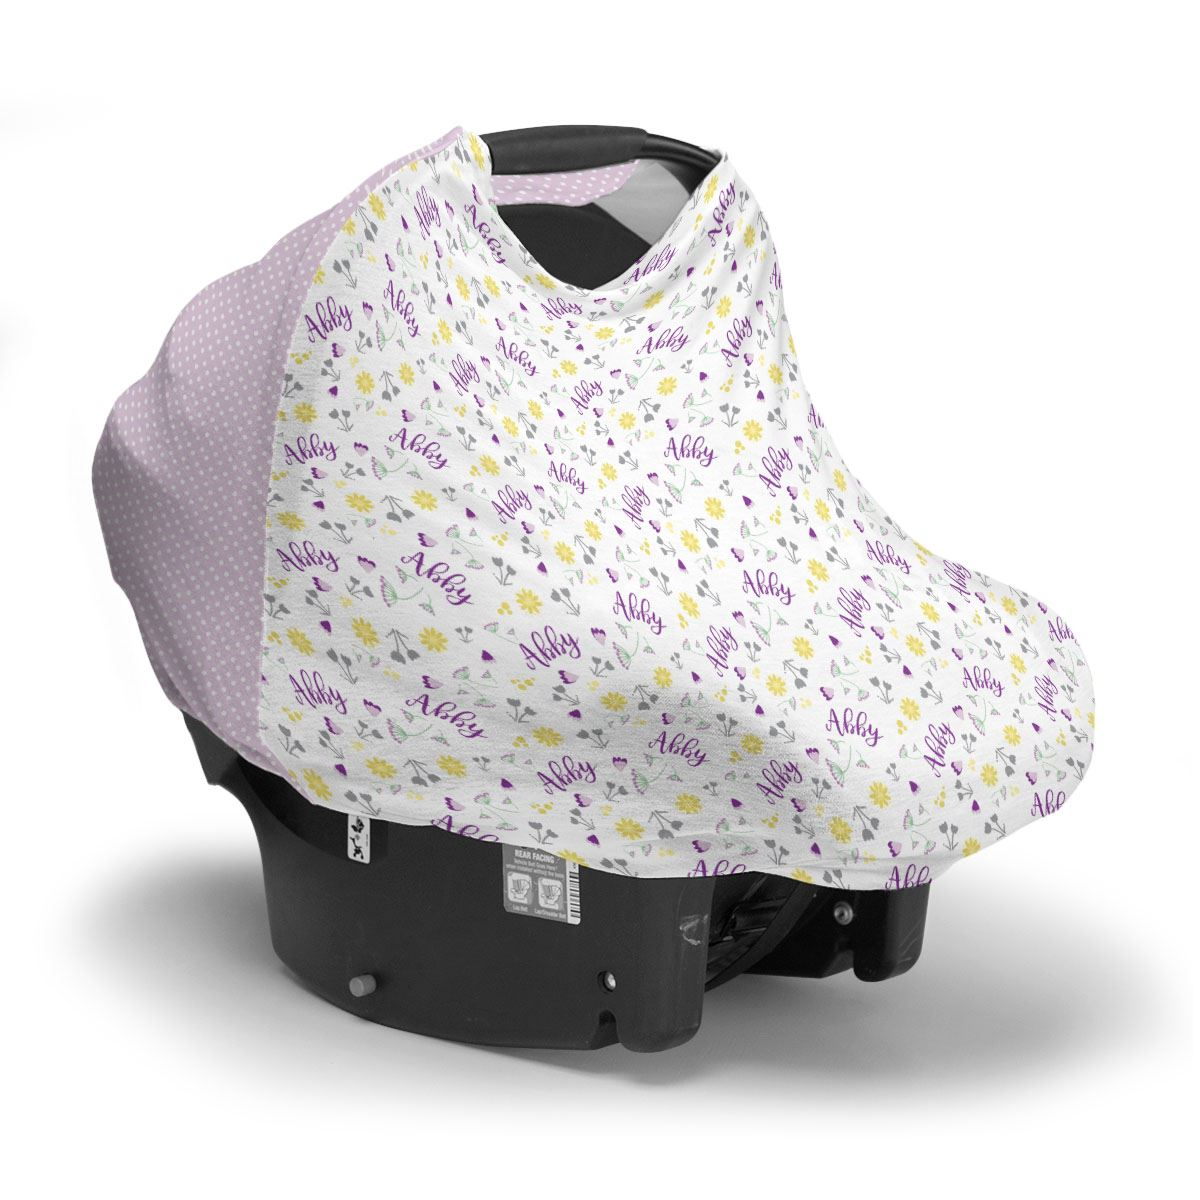 Abby's Wildflower | Car Seat Cover (Multi-Use)